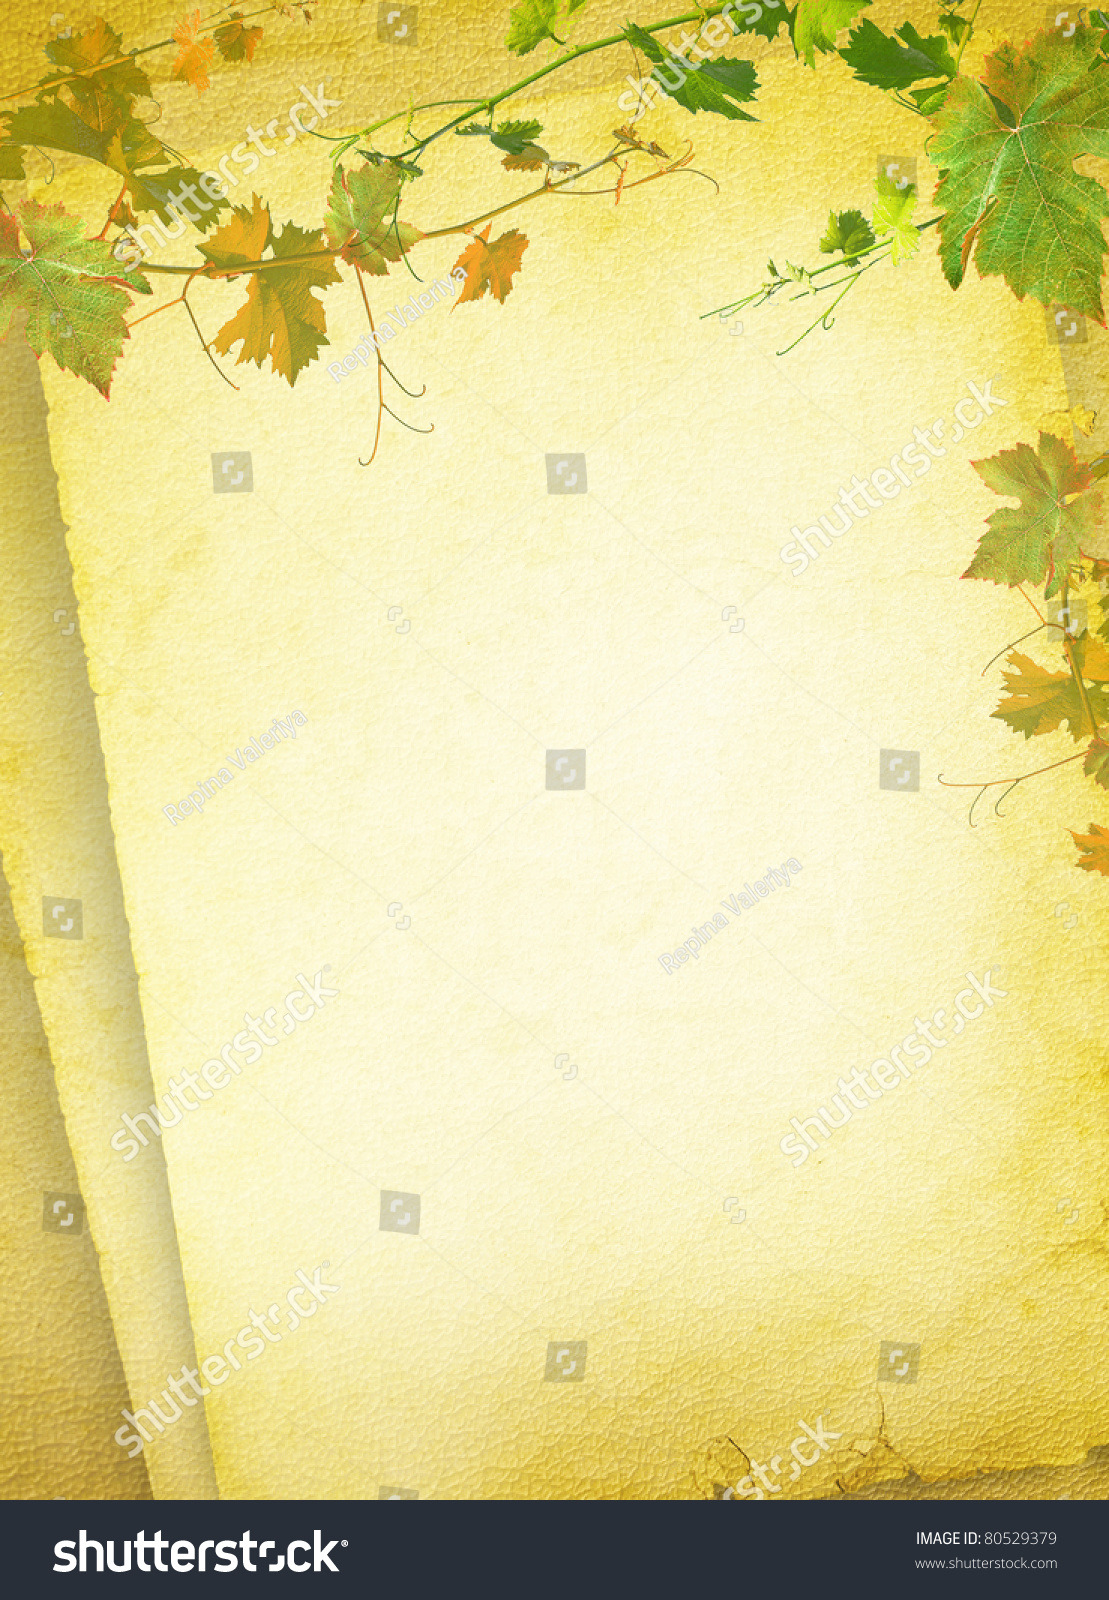 wine list menu grapes green leafs stock illustration 80529379